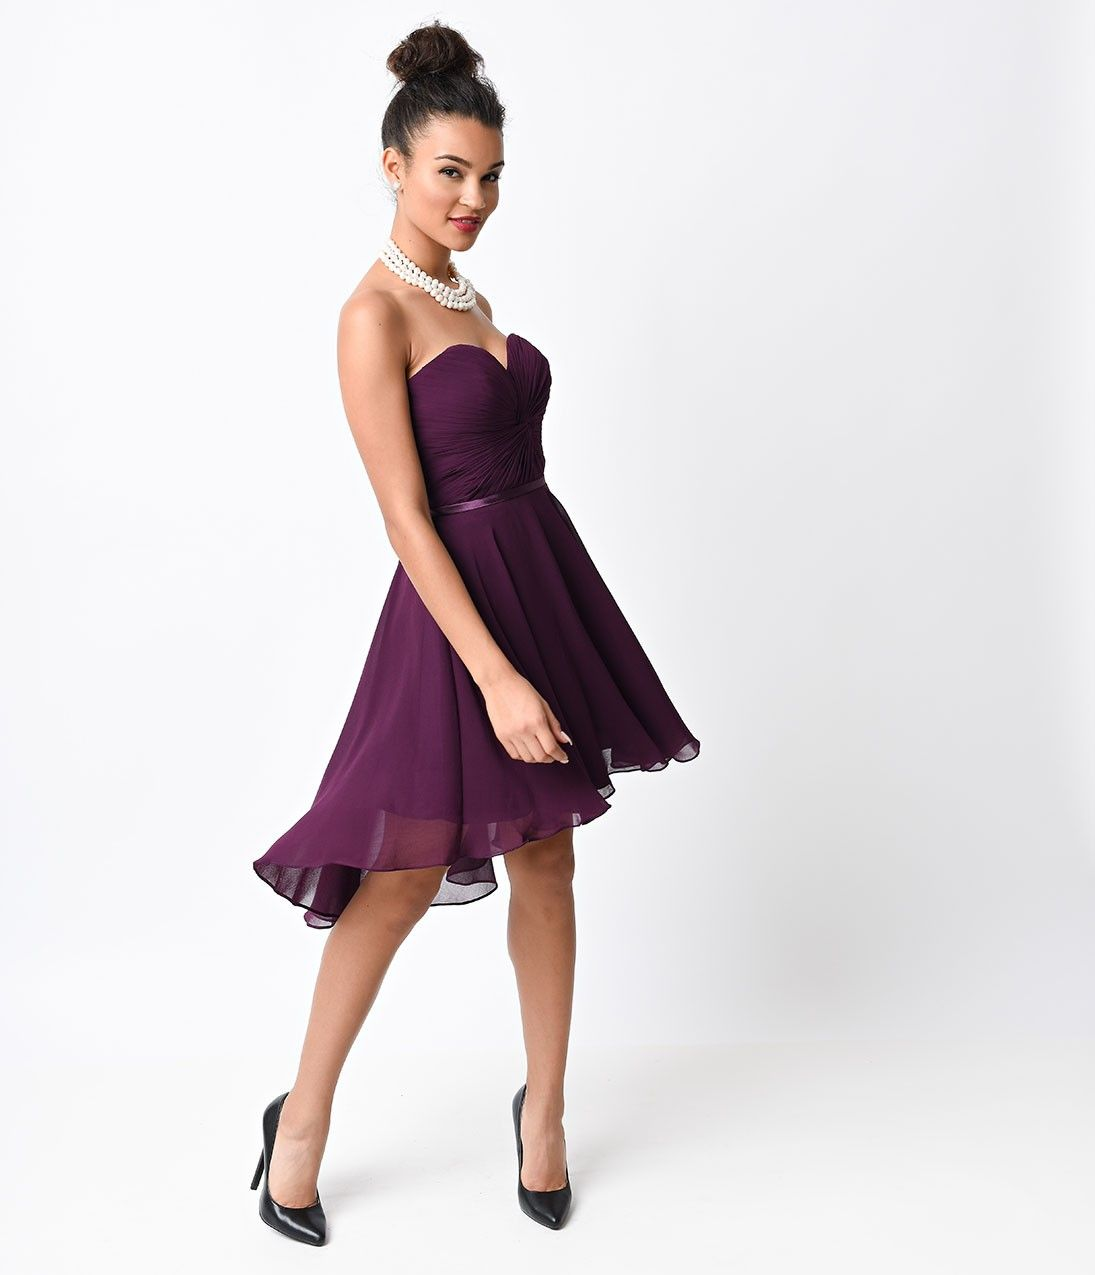 Eggplant chiffon strapless sweetheart corset short dress